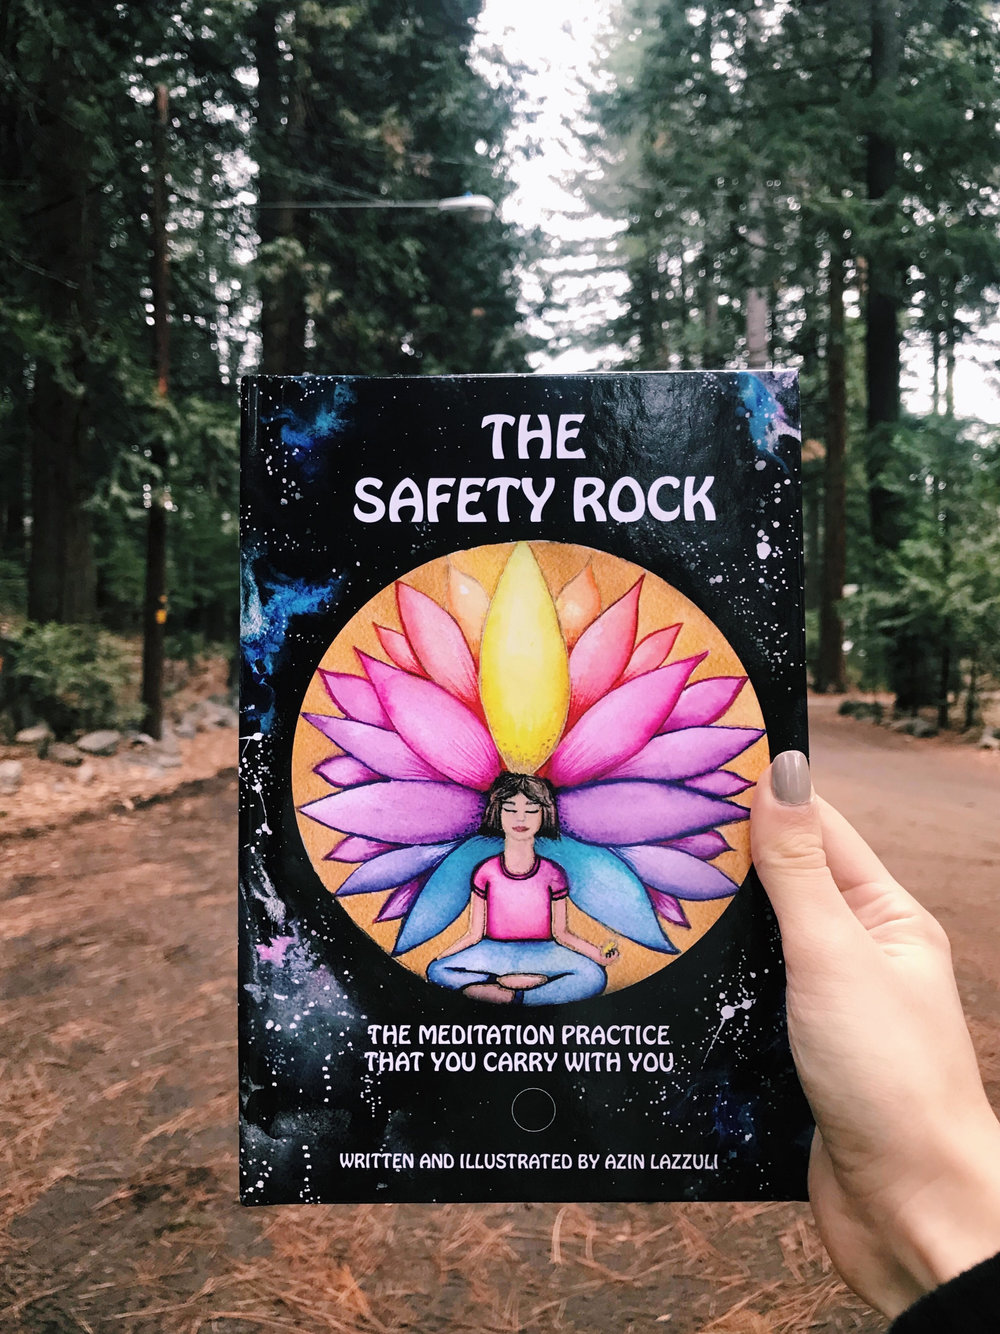 NOW AVAILABLE - In this book, children will learn how to meditate using the safety rock. Then they will be able to carry the benefits with them anywhere they go.The safety rock is a tool that instantly connects you to your body and the present moment. It was initially written for children who suffer from anxiety and PTSD, but it is a useful skill for all.This book comes with a Safety Rock included : The polished yellow aventurine stones have intentionally been chosen for their grounding and protective qualities.May the safety rock bring you confidence and courage on your journey.Intended for children 4+